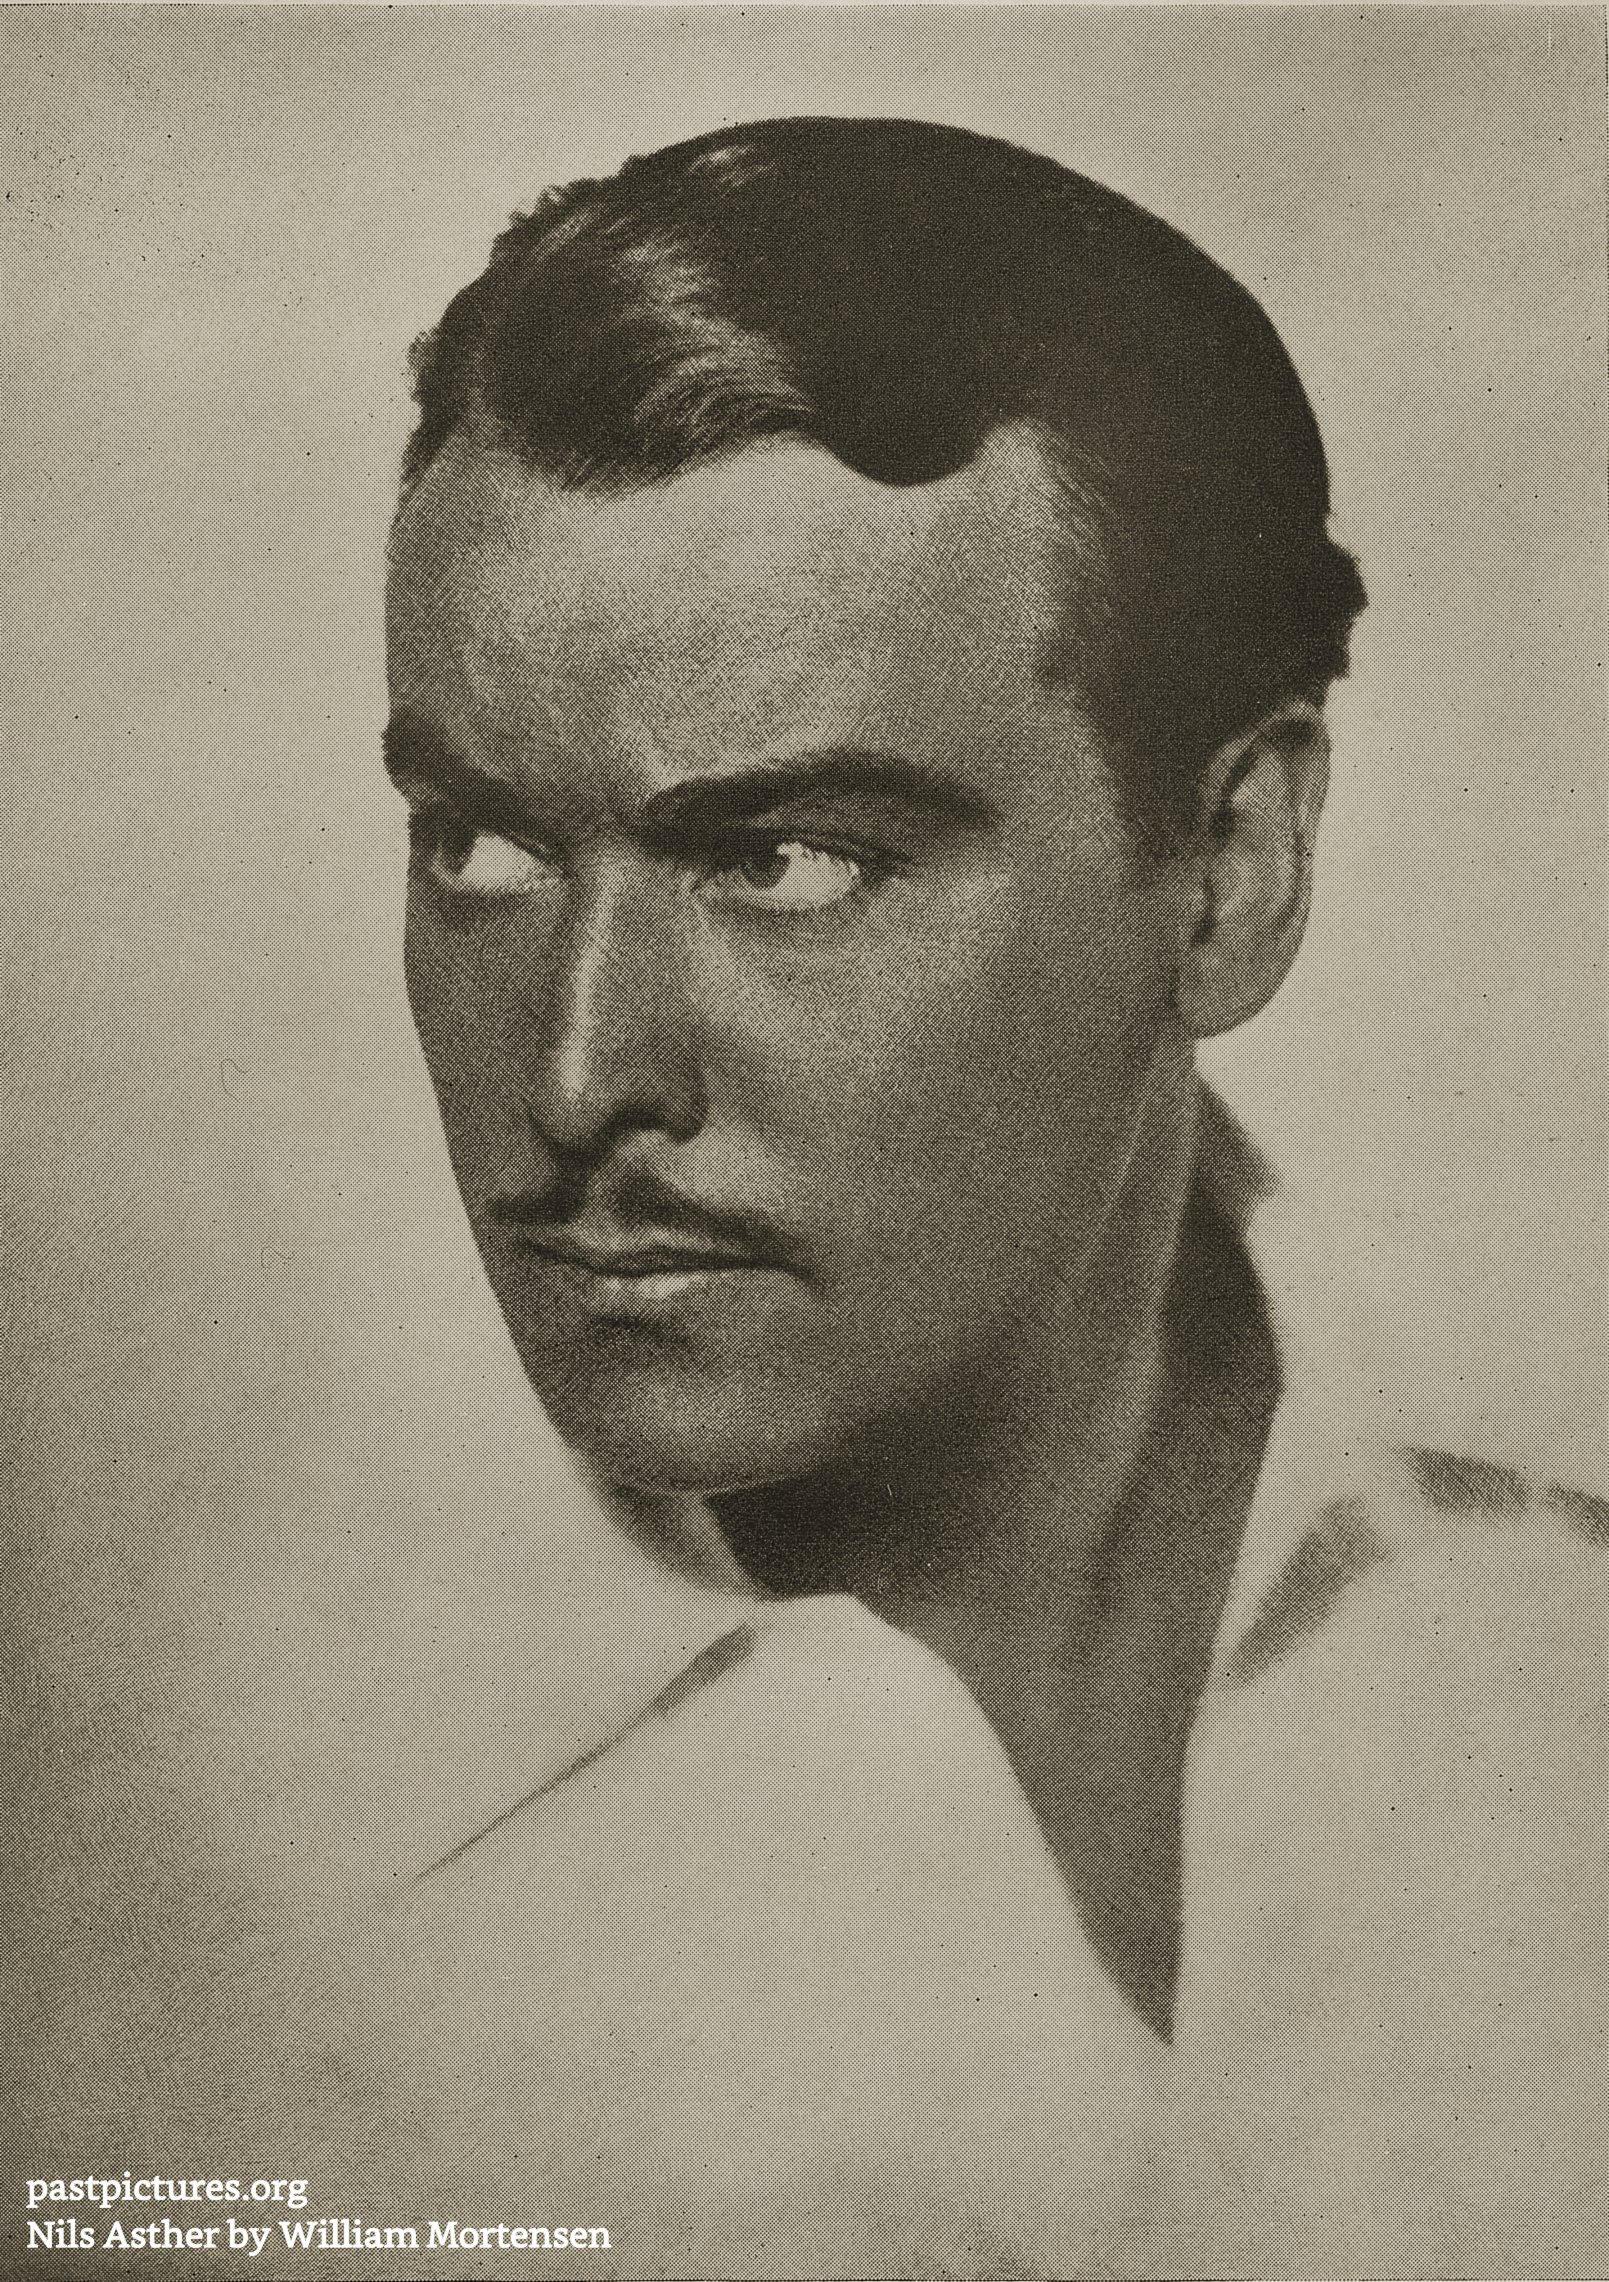 Nils Asther by William Mortensen about 1935